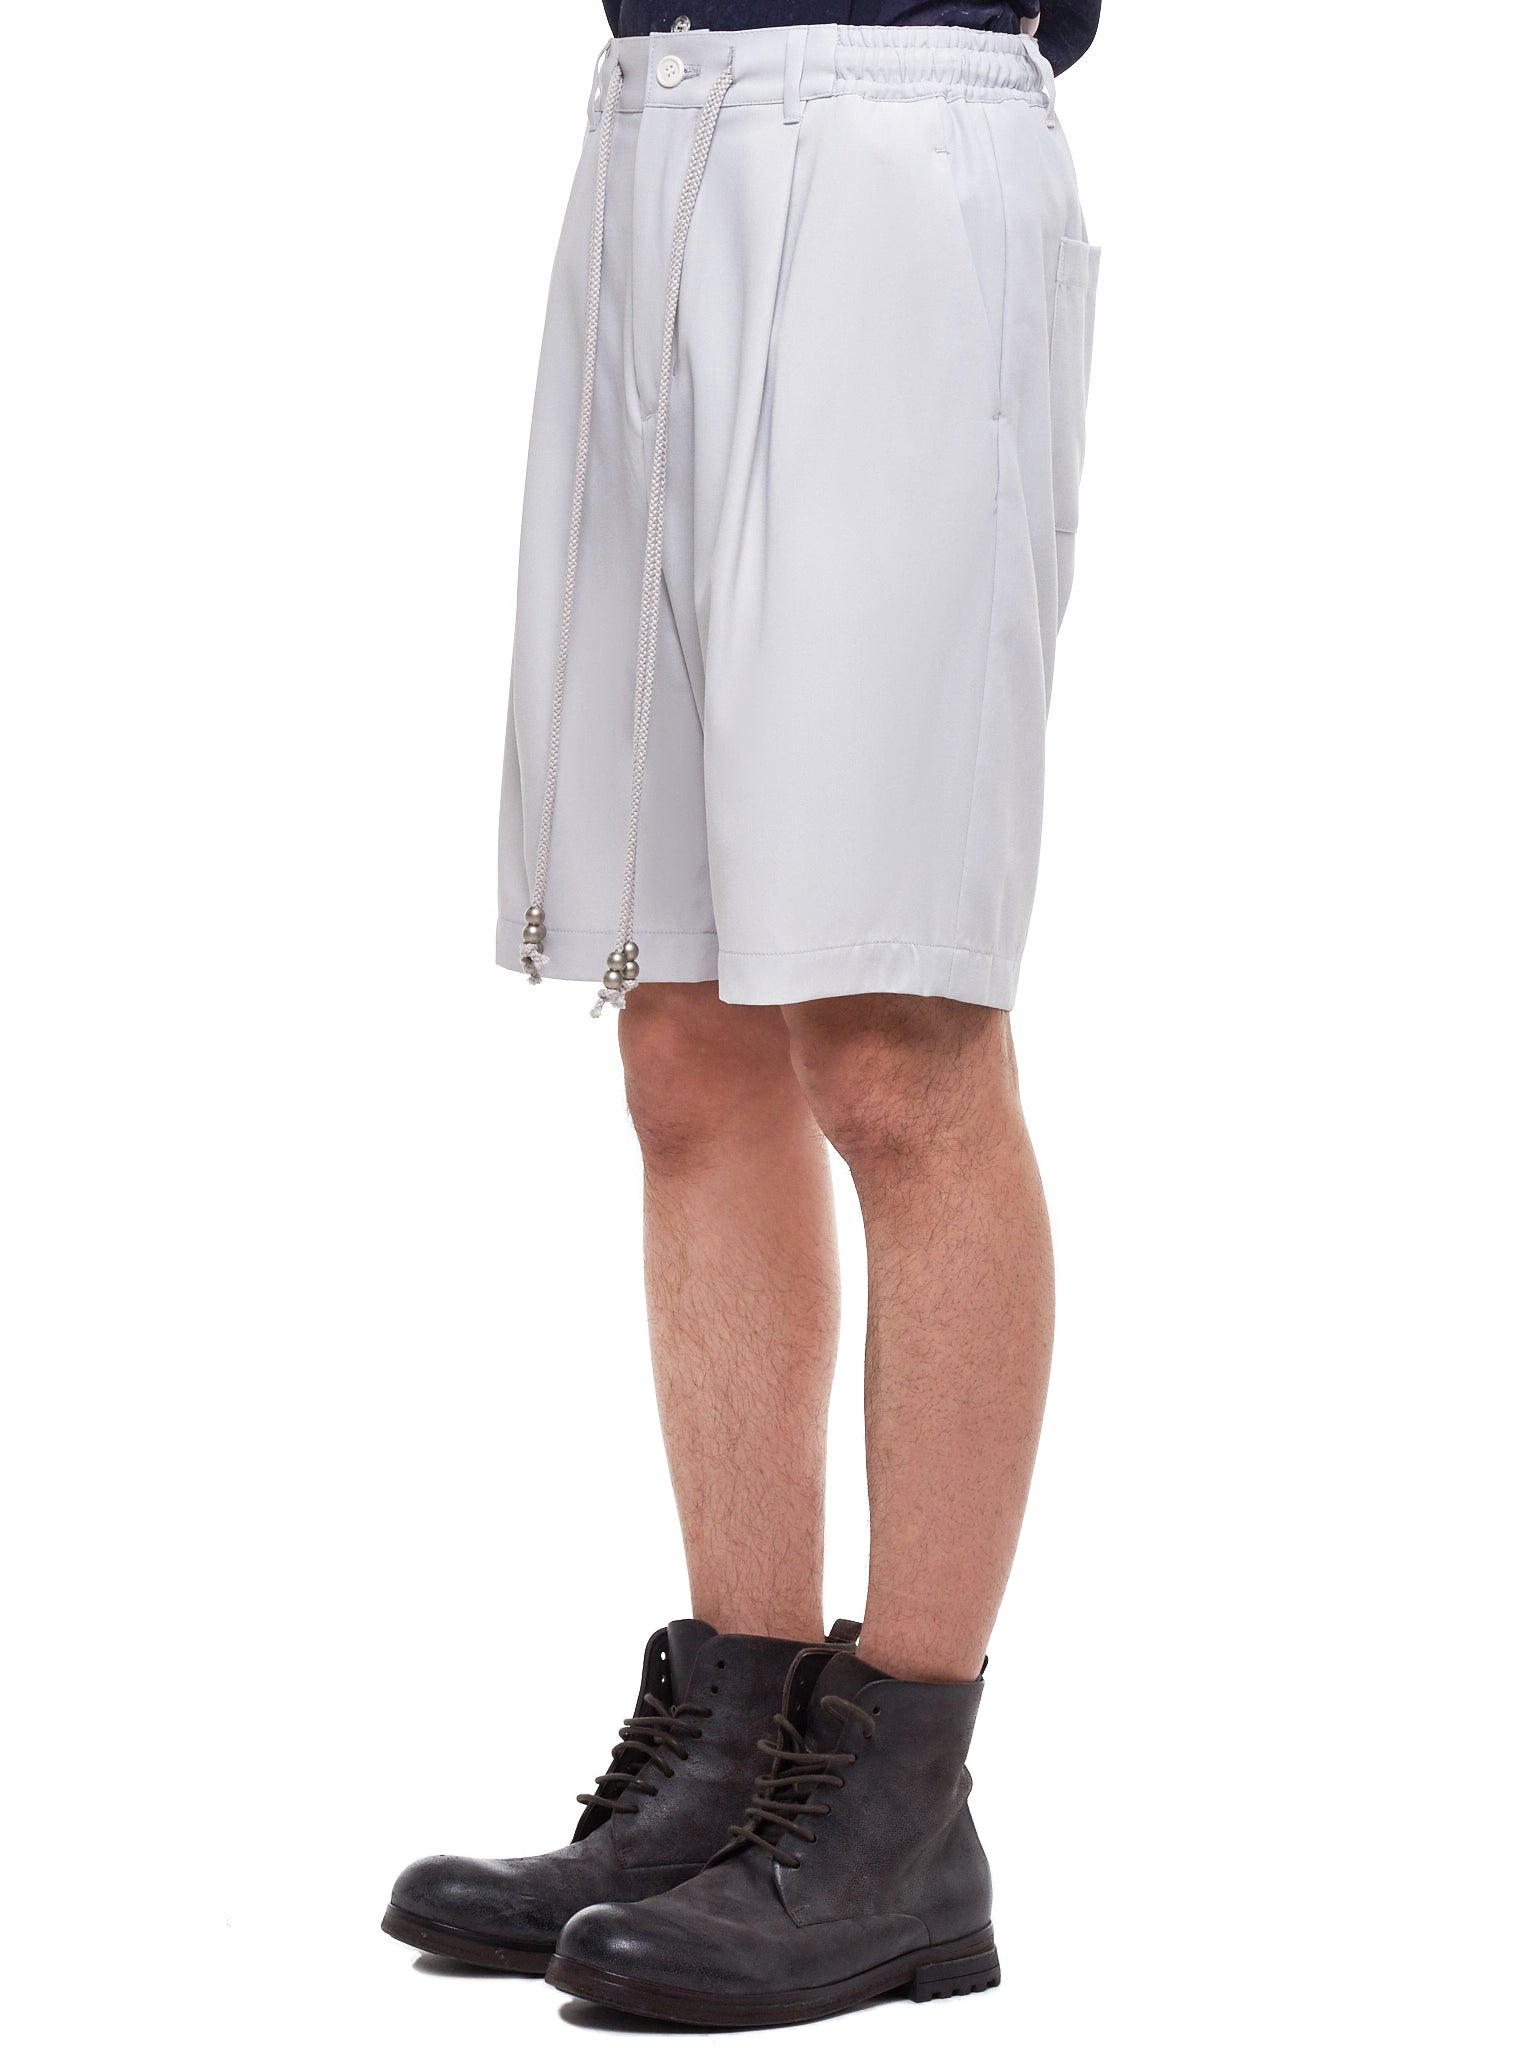 Christian Dada Shorts - Hlorenzo Side